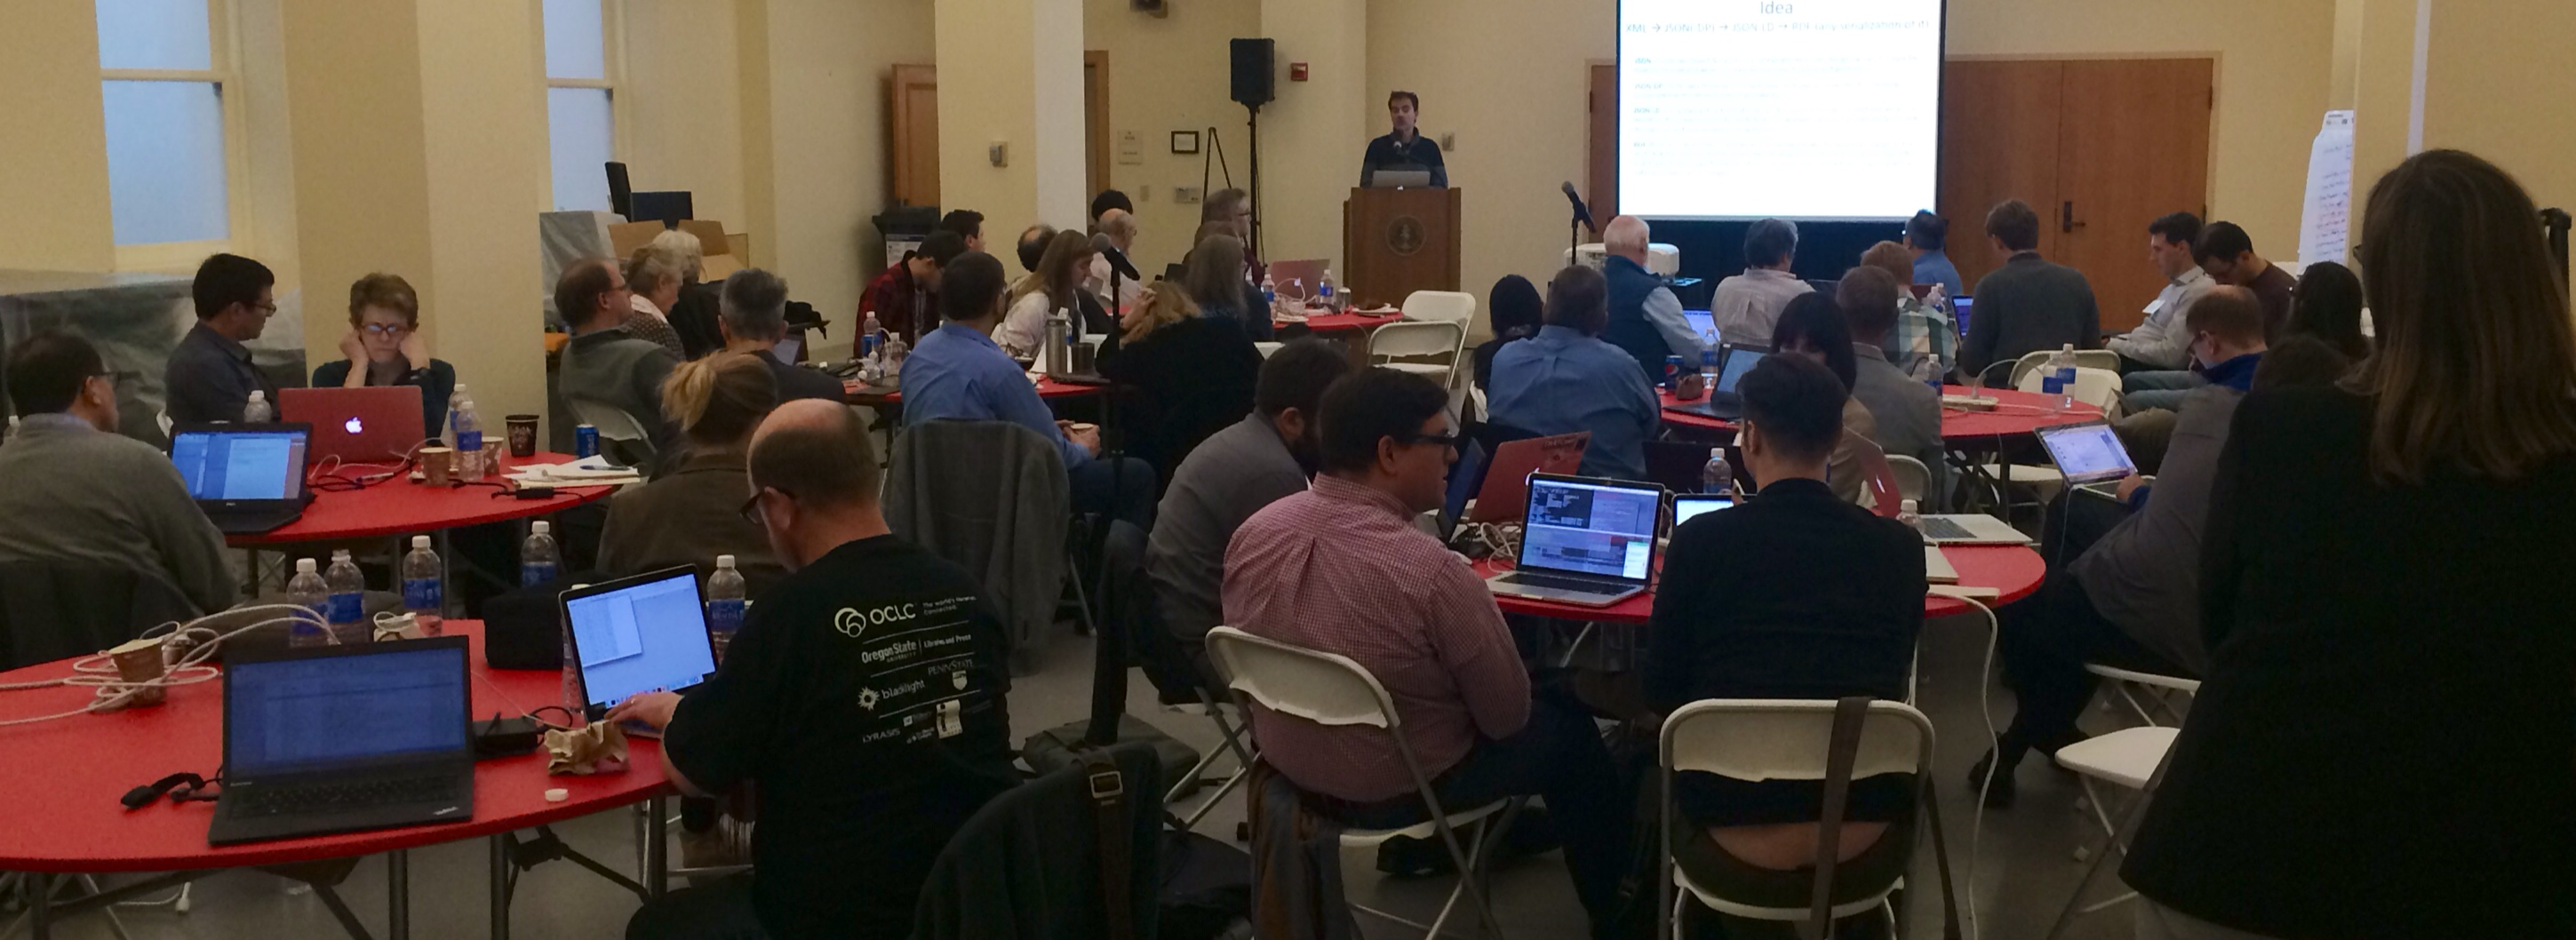 people in a conference room participating in the linked data conference.